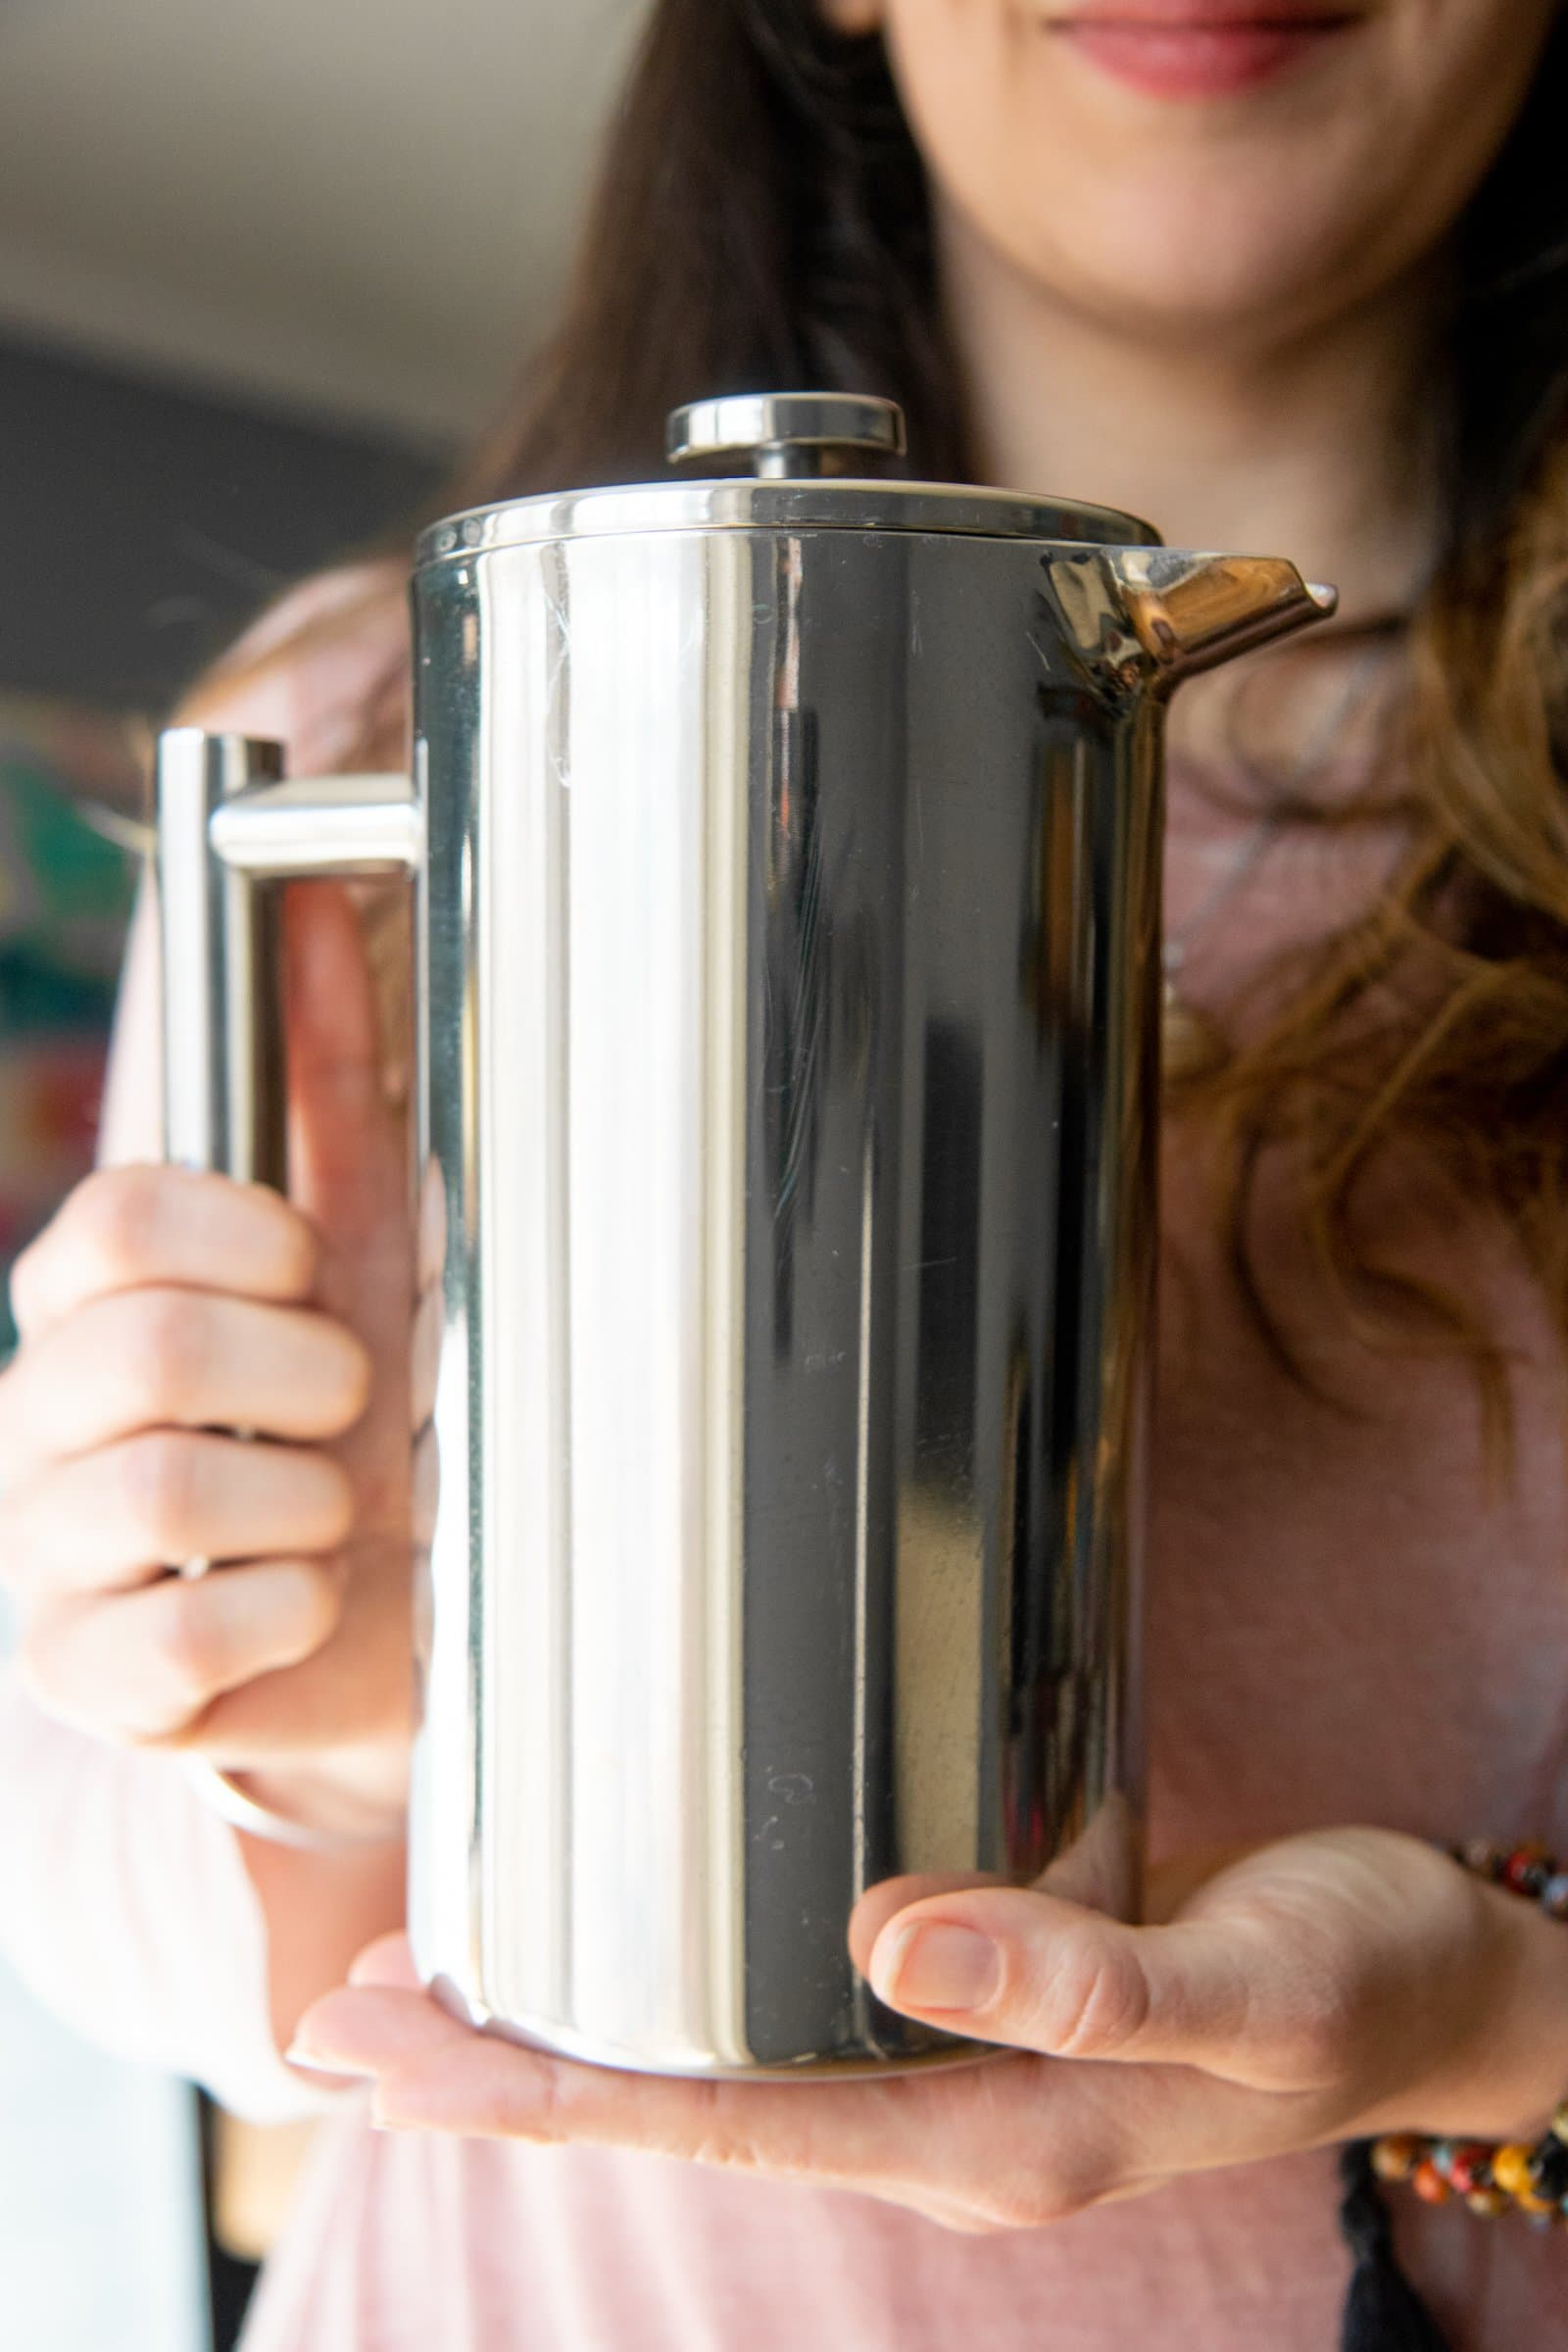 Long-haired woman holding up a stainless steel French press